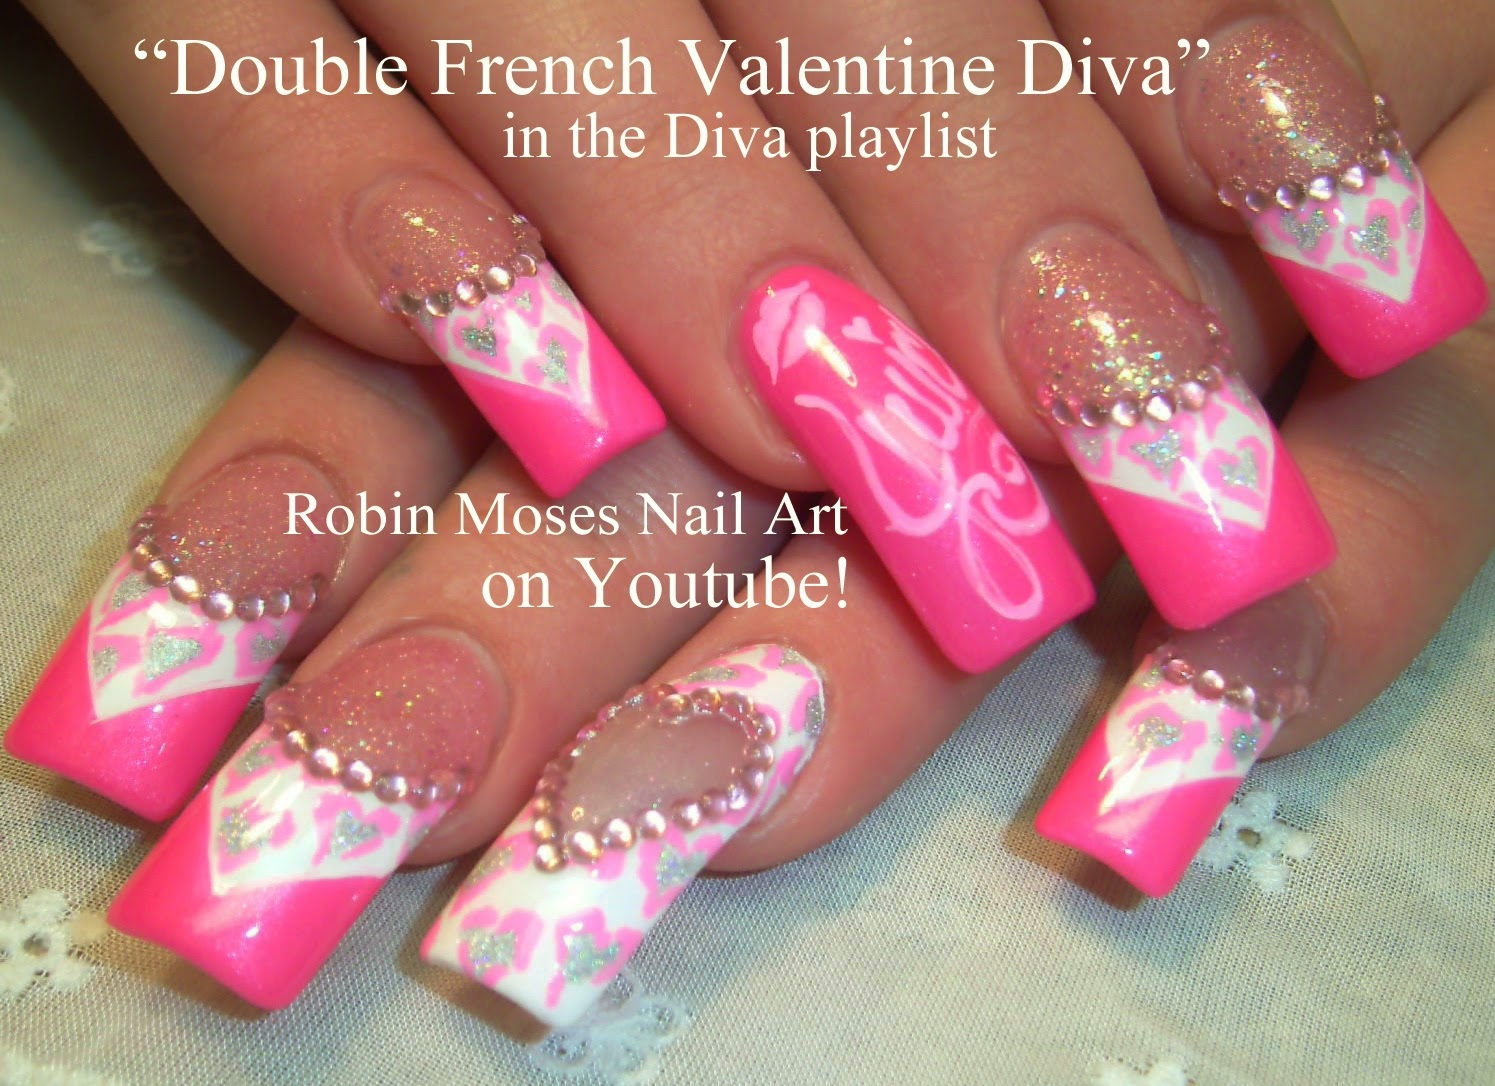 Robin moses nail art monster energy drink nails monster nails pretty in pink isnt she pretty in pink isnt she prinsesfo Image collections